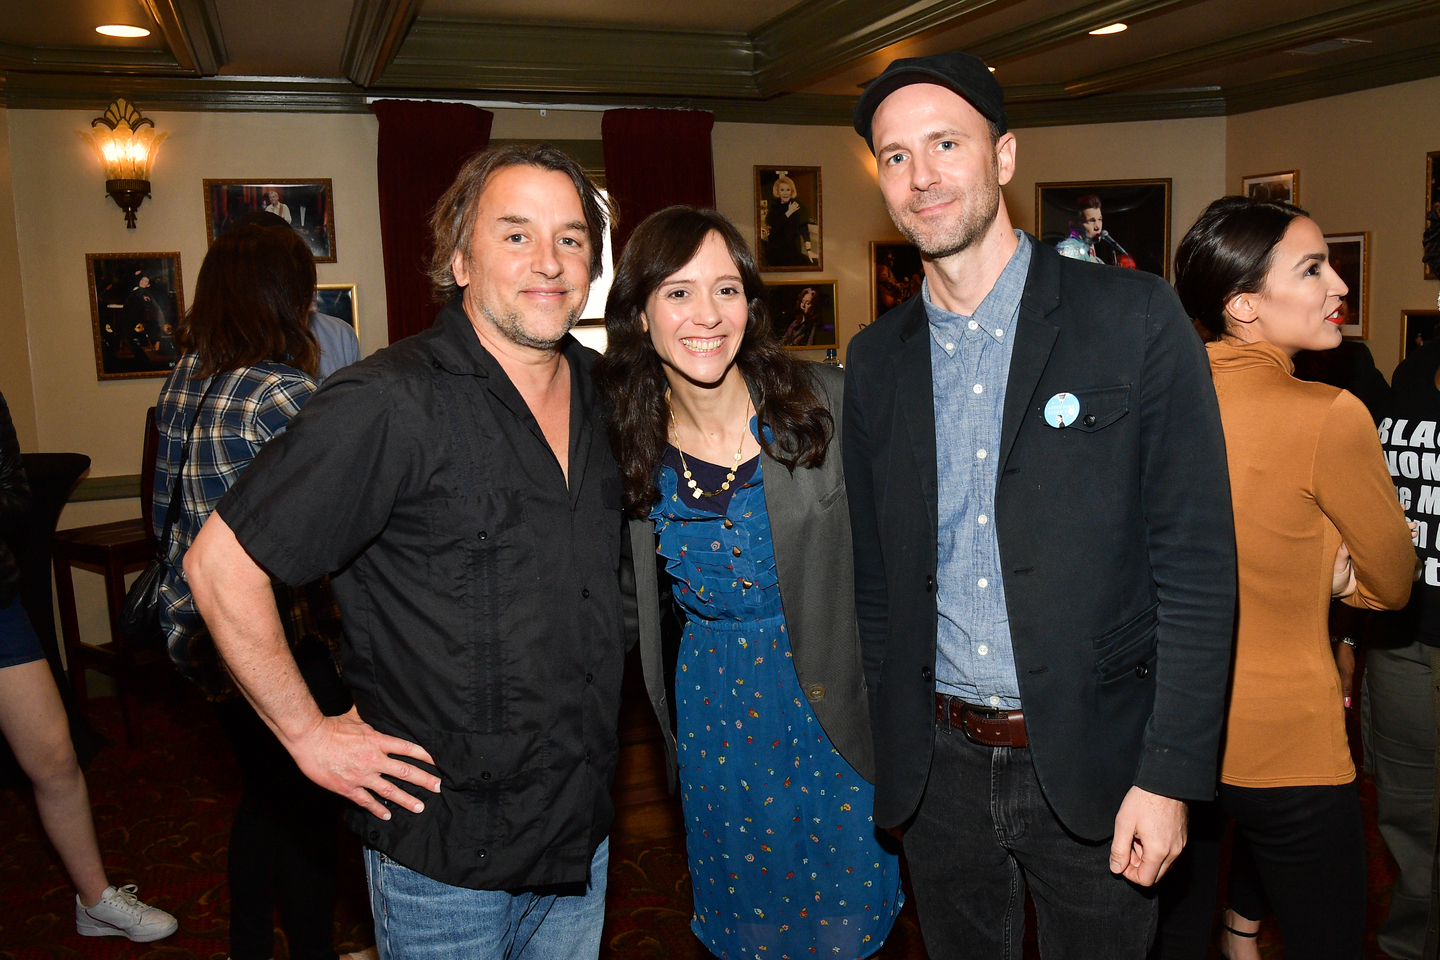 Richard Linklater, Rachel Lears, Robin Blotnickand Alexandria Ocasio-Cortez, attend the Knock Down The House Premiere at the Paramount Theatre.